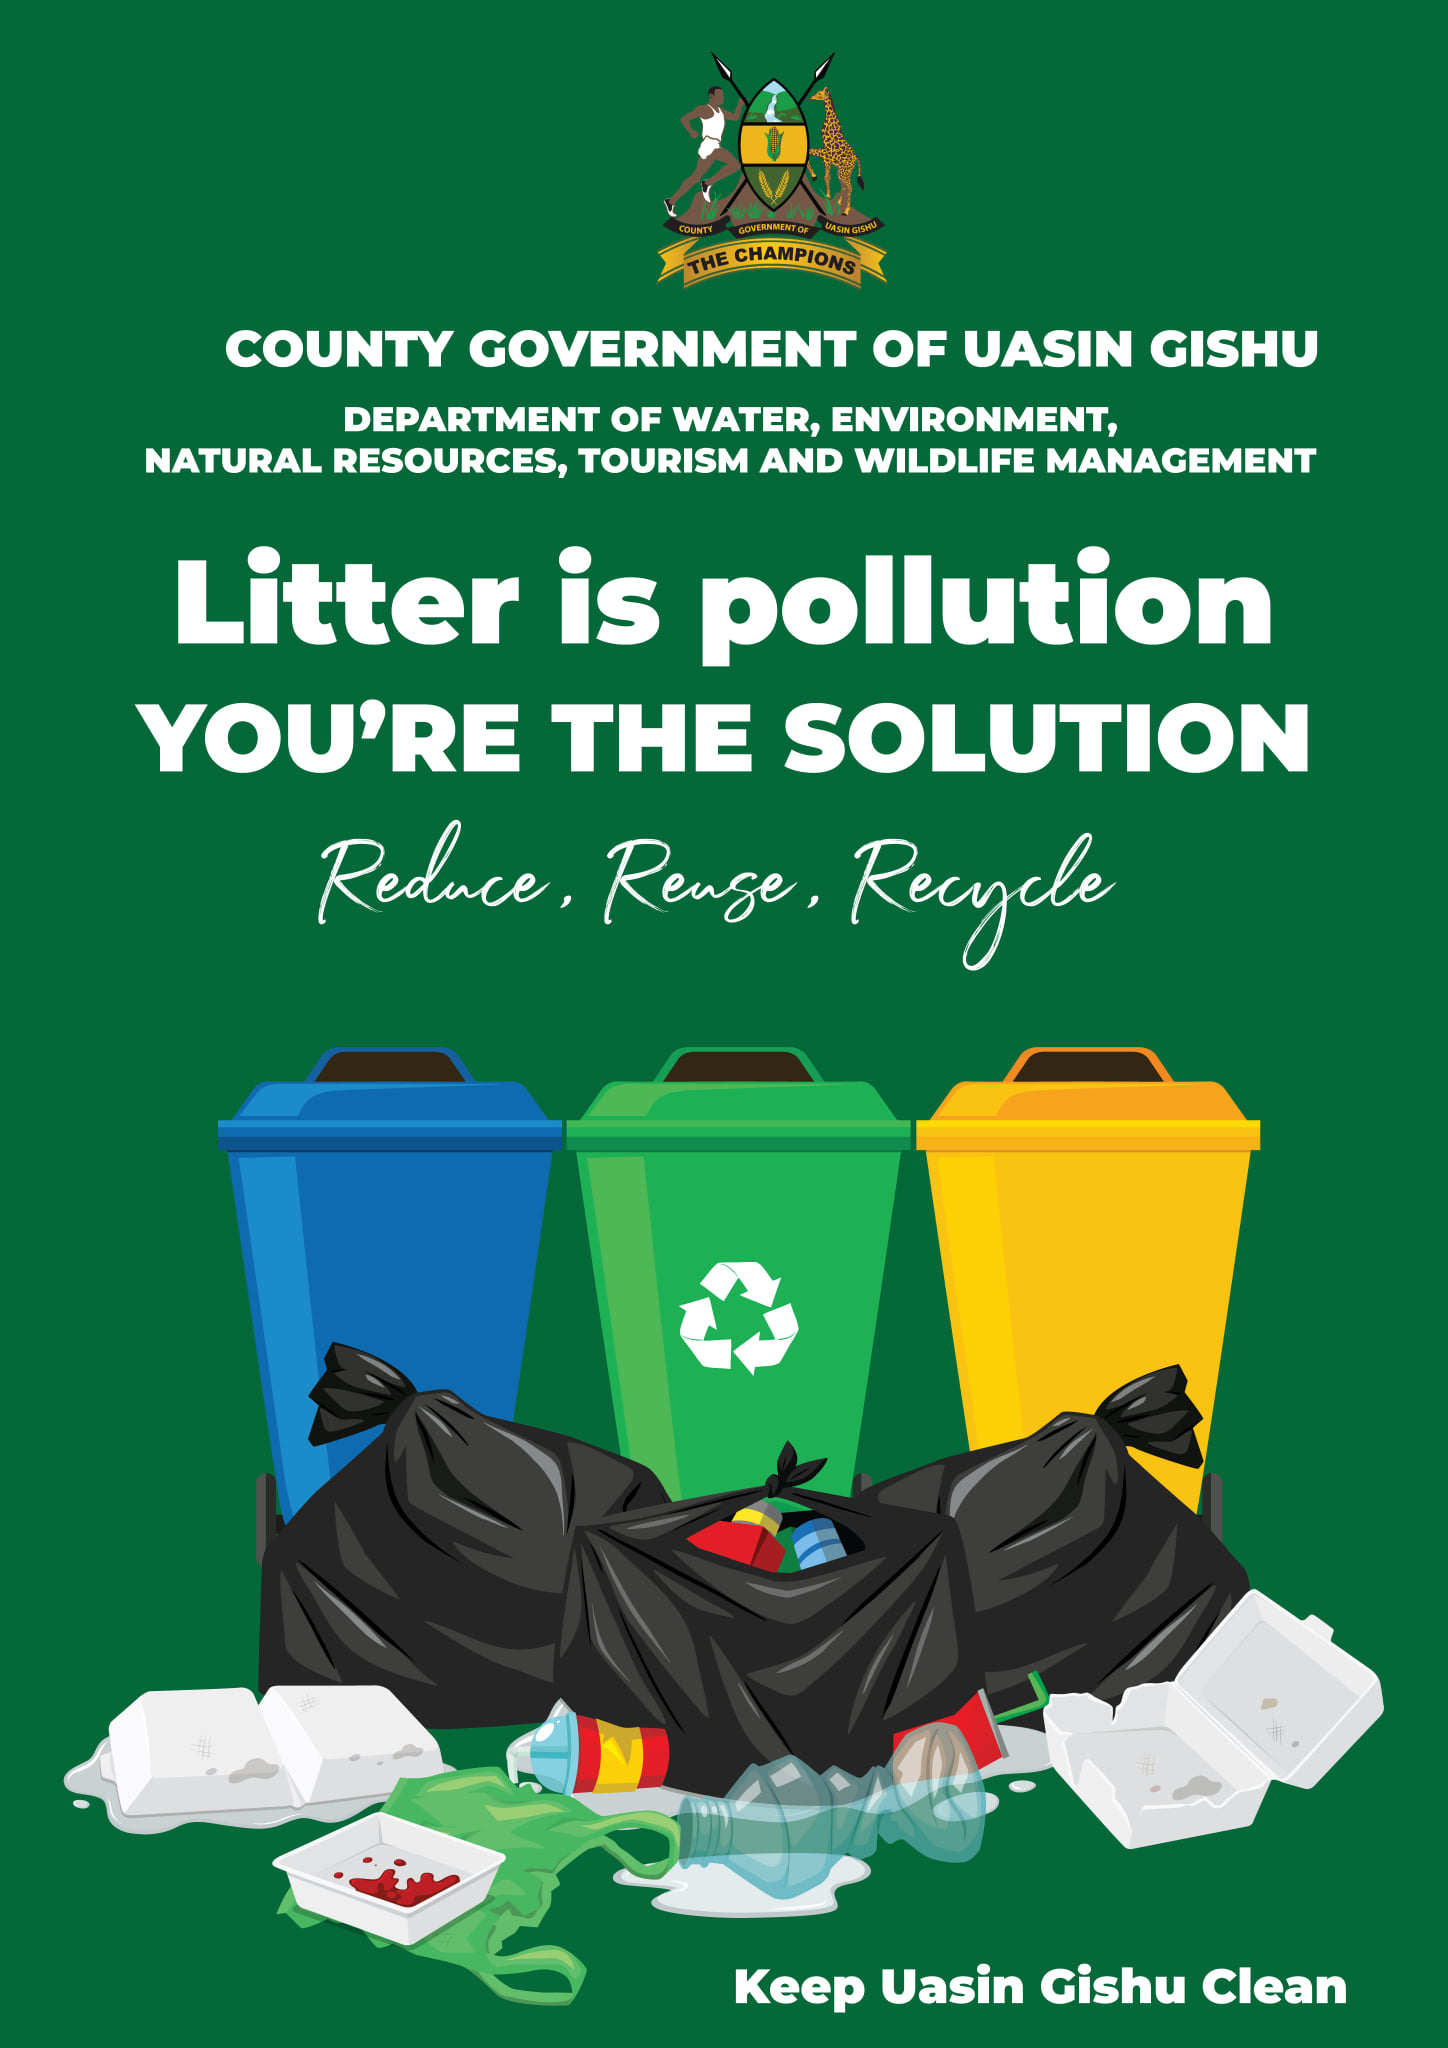 County Government of Uasin Gishu Ad